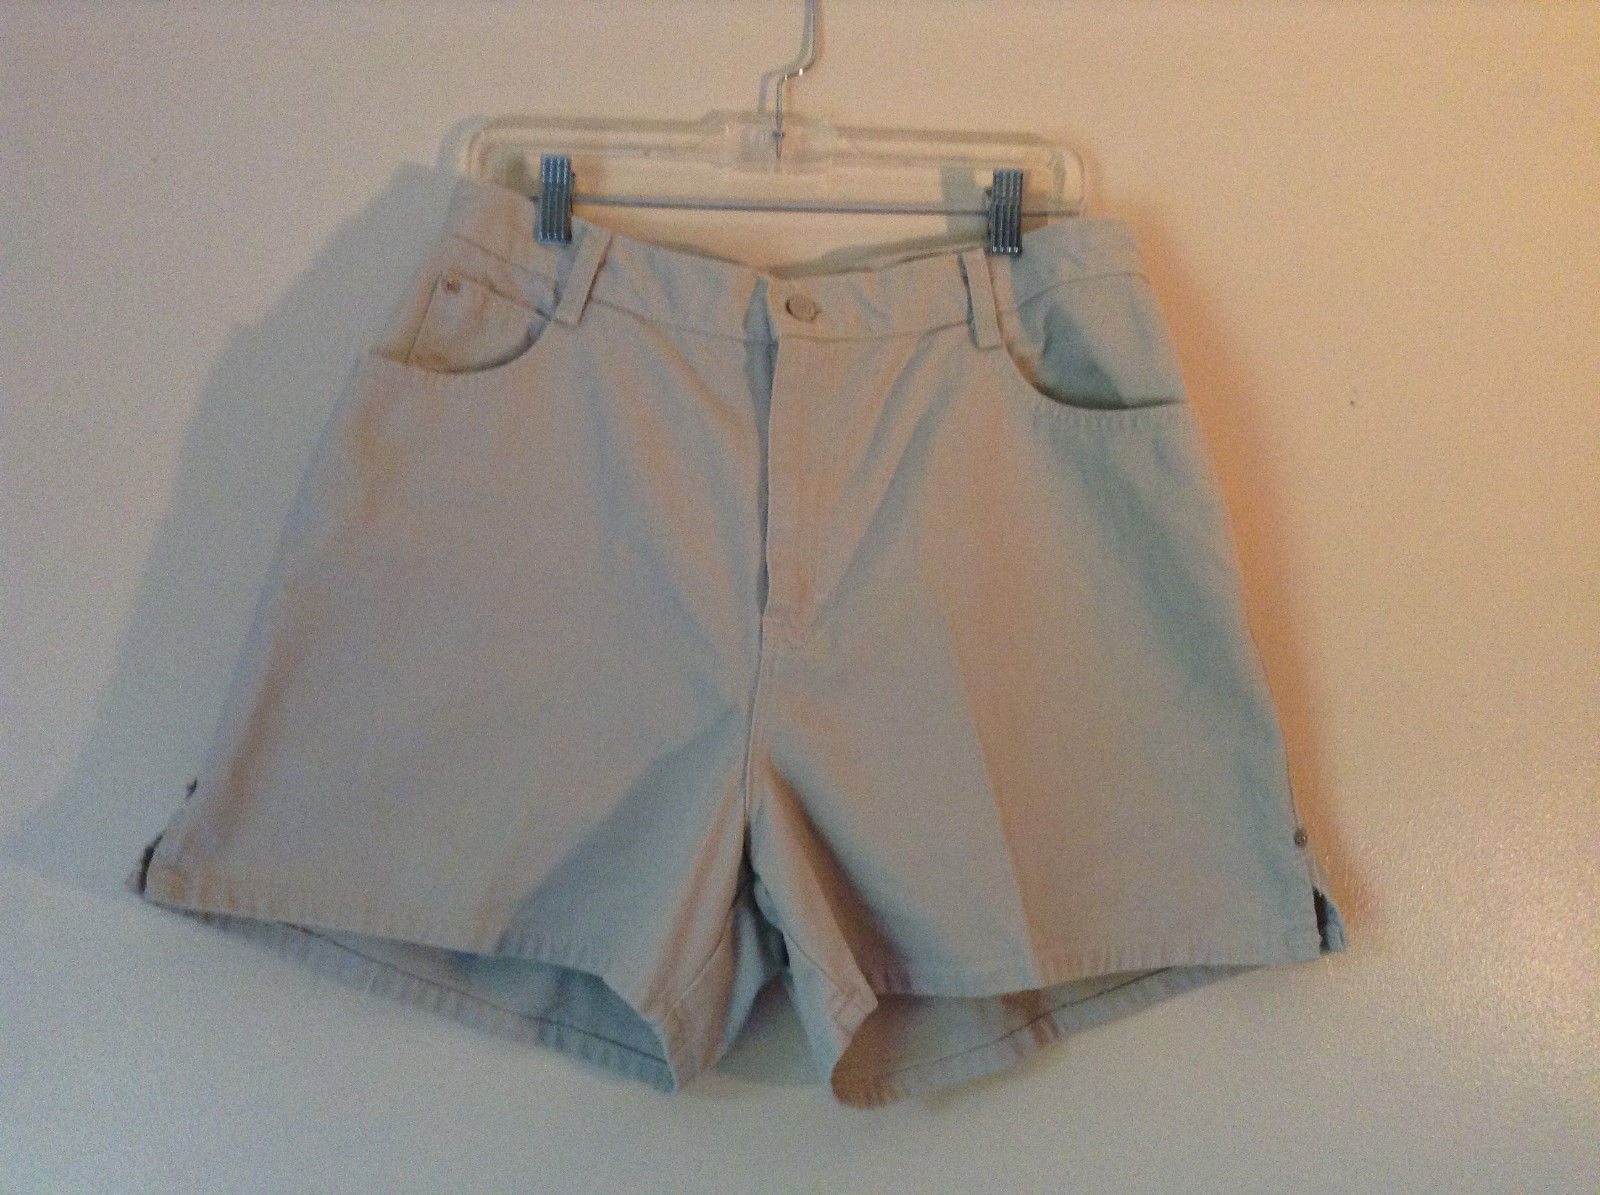 Gitano Light Khakis 100 Percent Cotton Shorts Front and Back Pockets Size 16